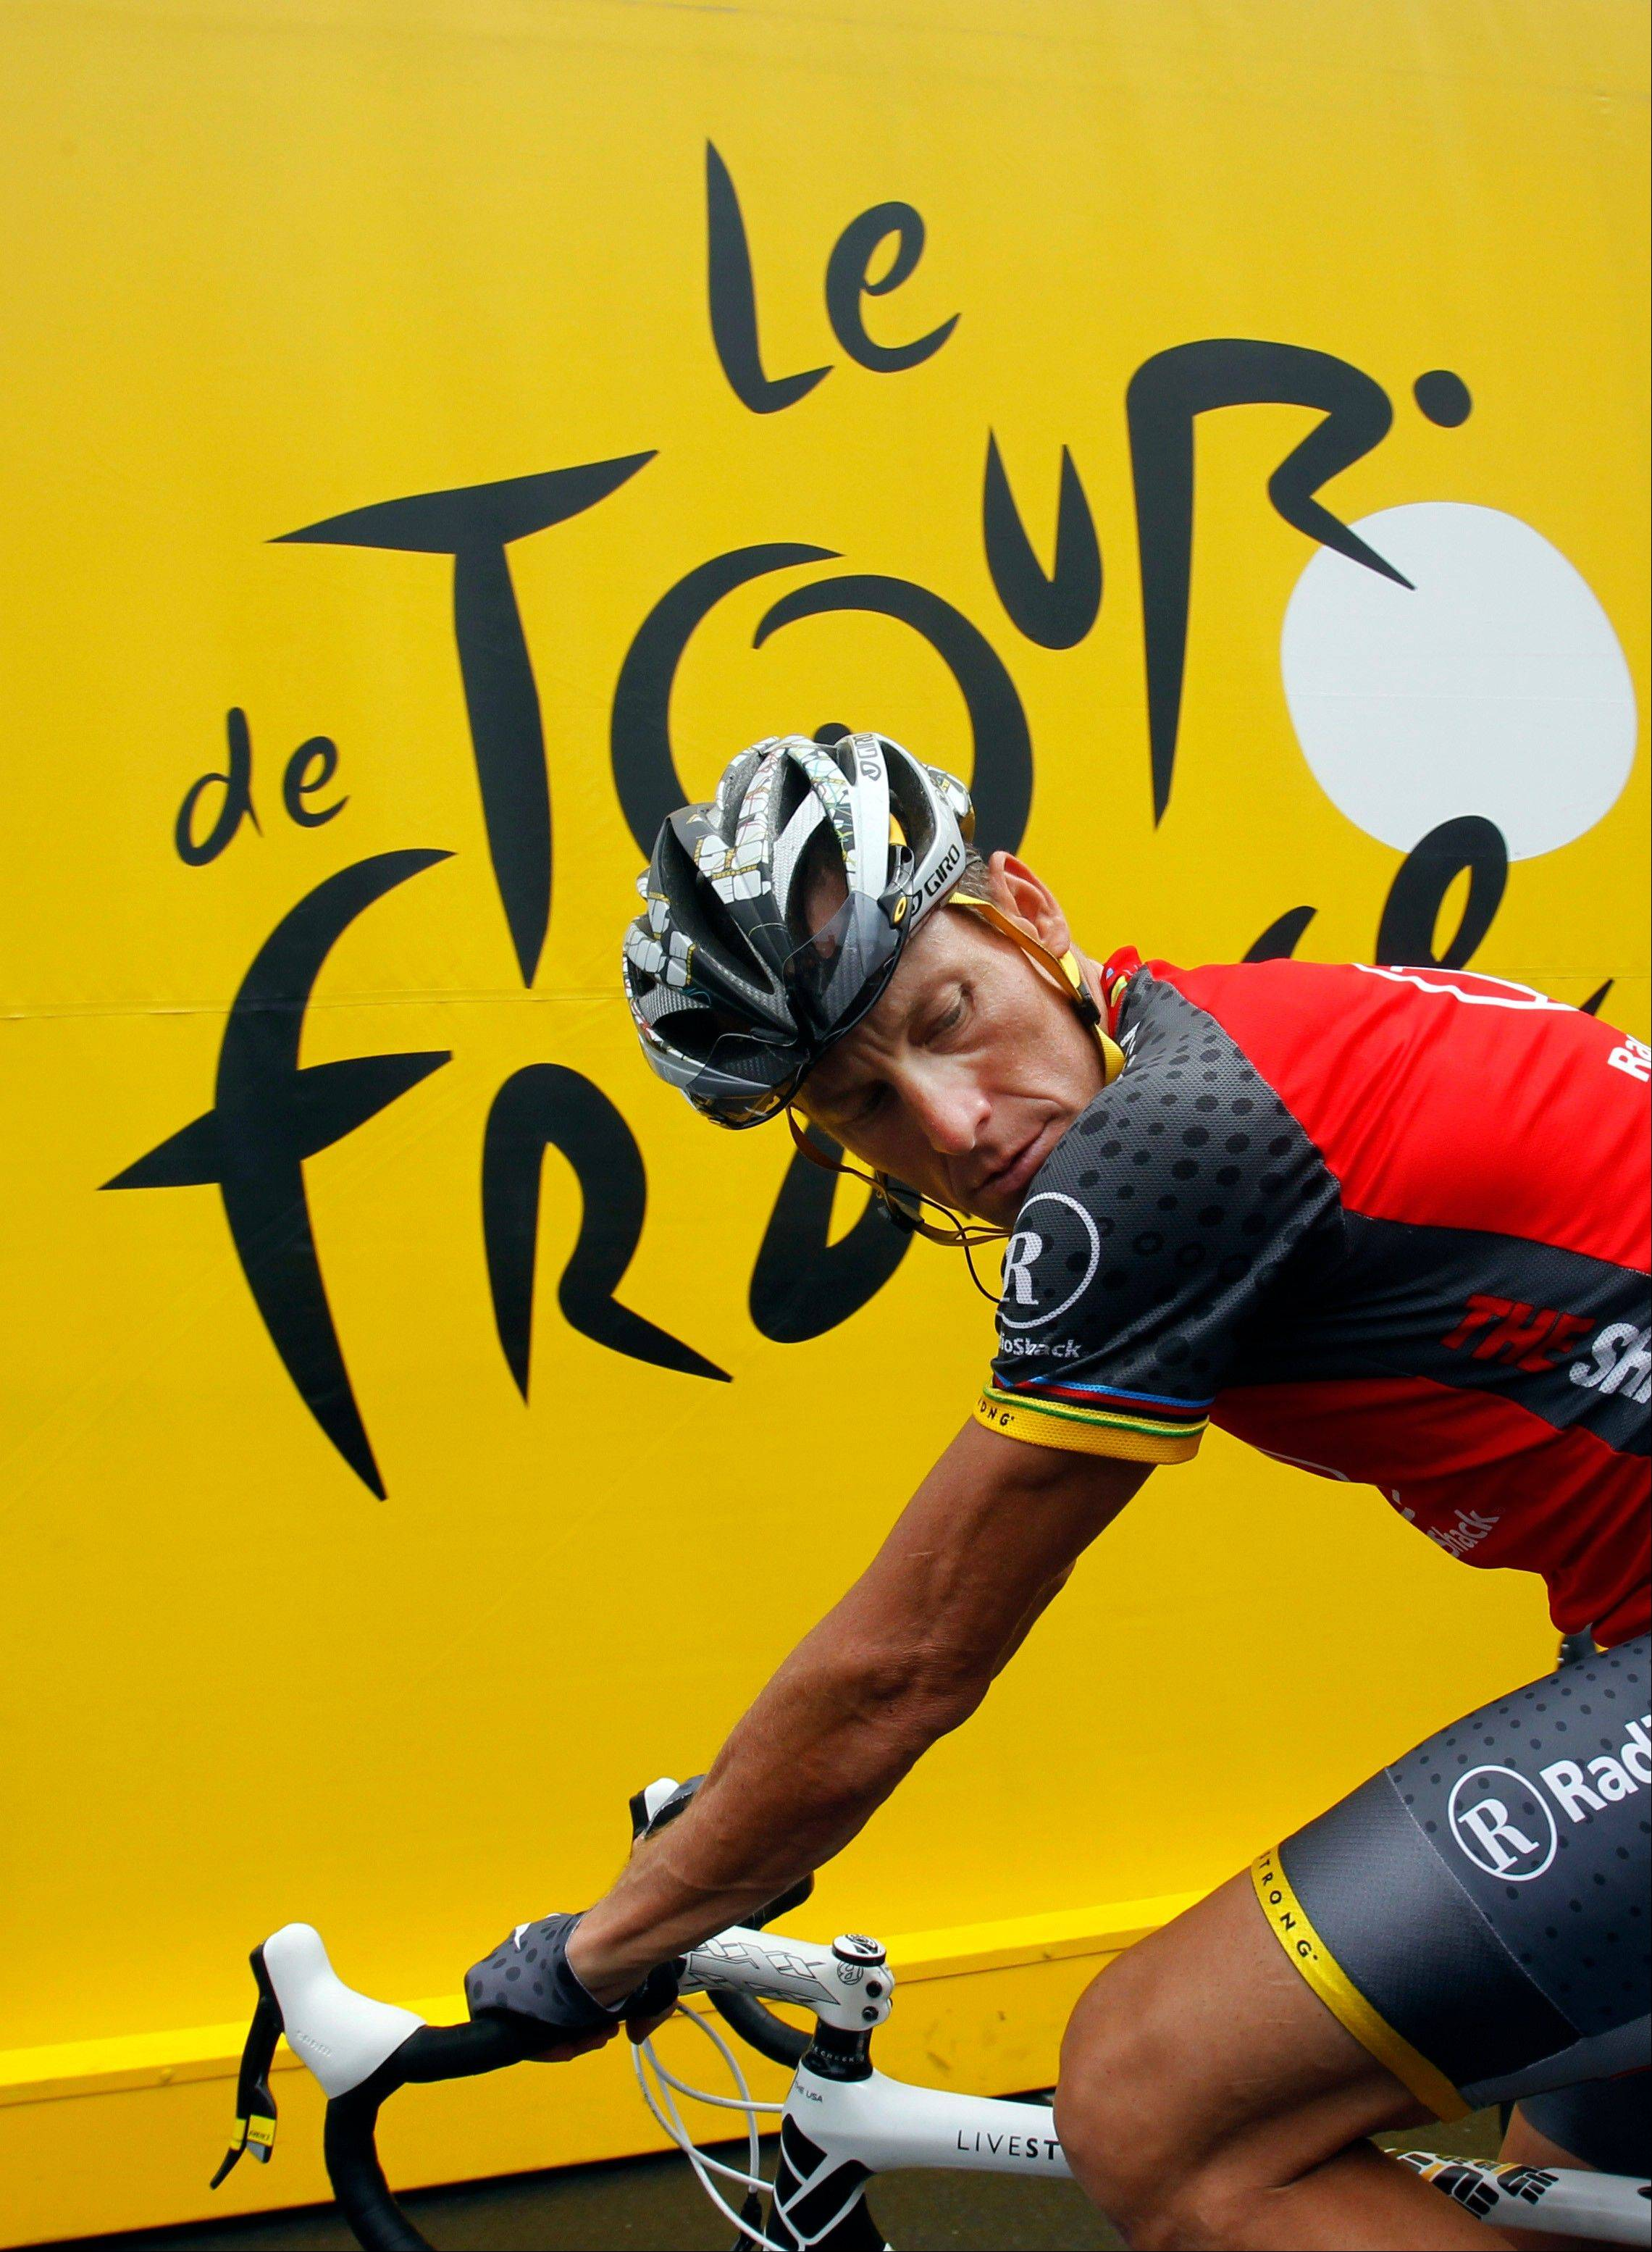 In this July 9, 2010, file photo, Lance Armstrong prepares to take the start of the sixth stage of the Tour de France cycling race over 227.5 kilometers (141.4 miles) with a start in Montargis and finish in Gueugnon, France. Armstrong said on Thursday, Aug. 23, 2012, that he is finished fighting charges from the United States Anti-Doping Agency that he used performance-enhancing drugs during his unprecedented cycling career, a decision that could put his string of seven Tour de France titles in jeopardy.